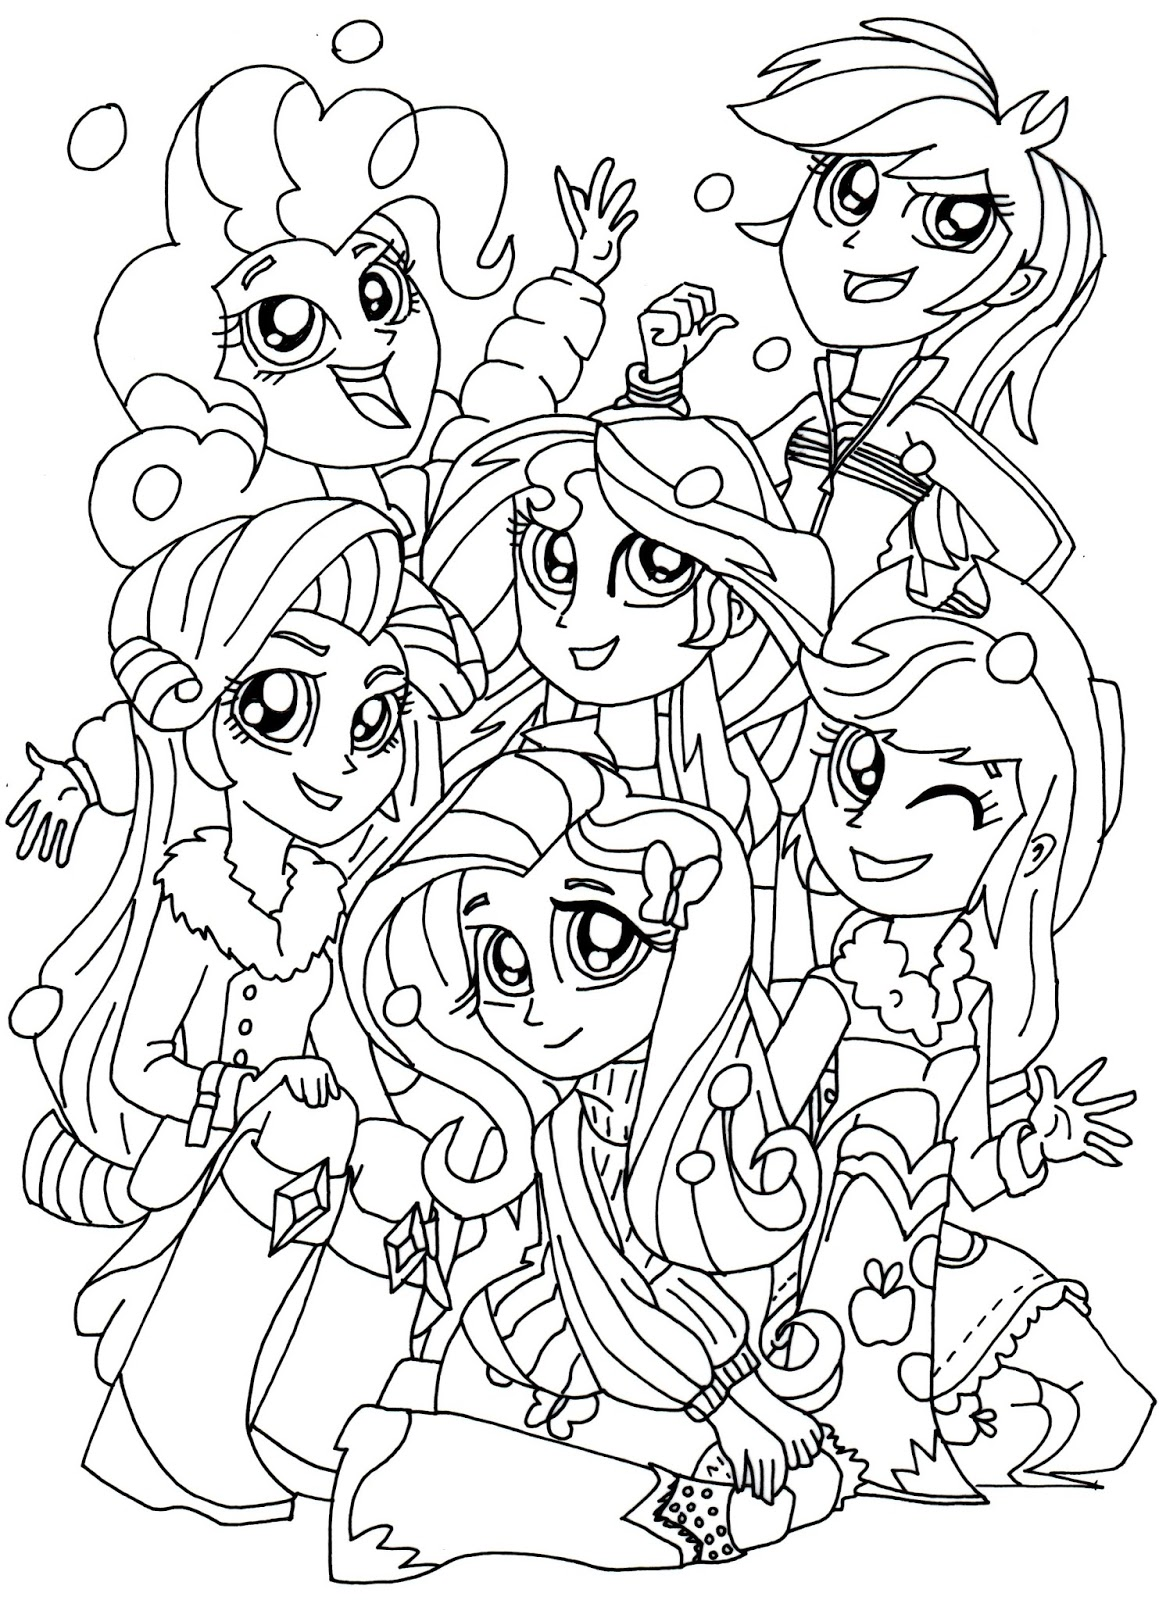 Free Printable My Little Pony Coloring Pages January 2016 My Pony Equestria Coloring Pages Sunset Shimmer Printable